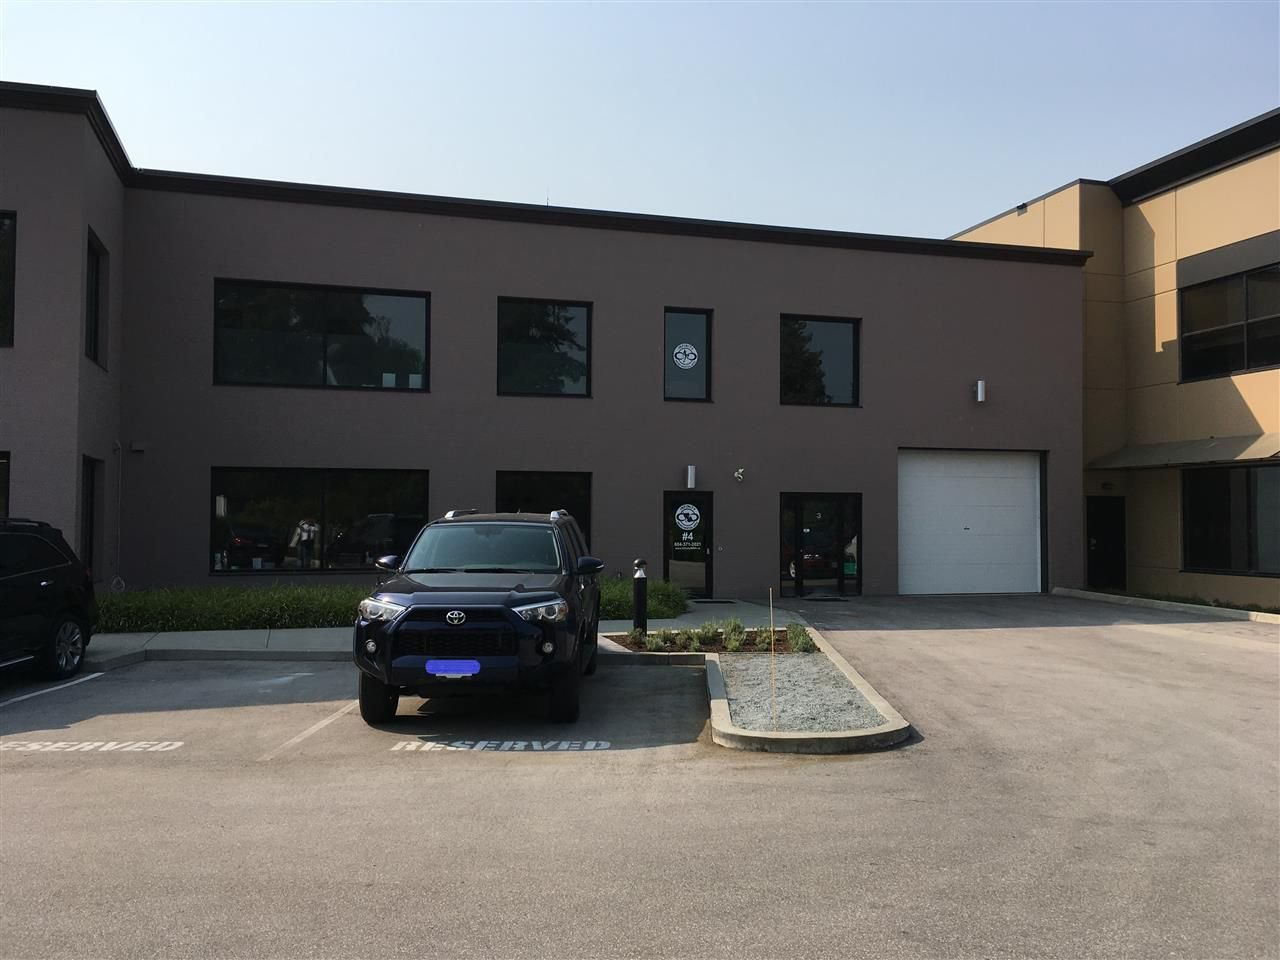 Main Photo: 3 20252 98 AVENUE in Langley: Walnut Grove Industrial for lease : MLS®# C8020770